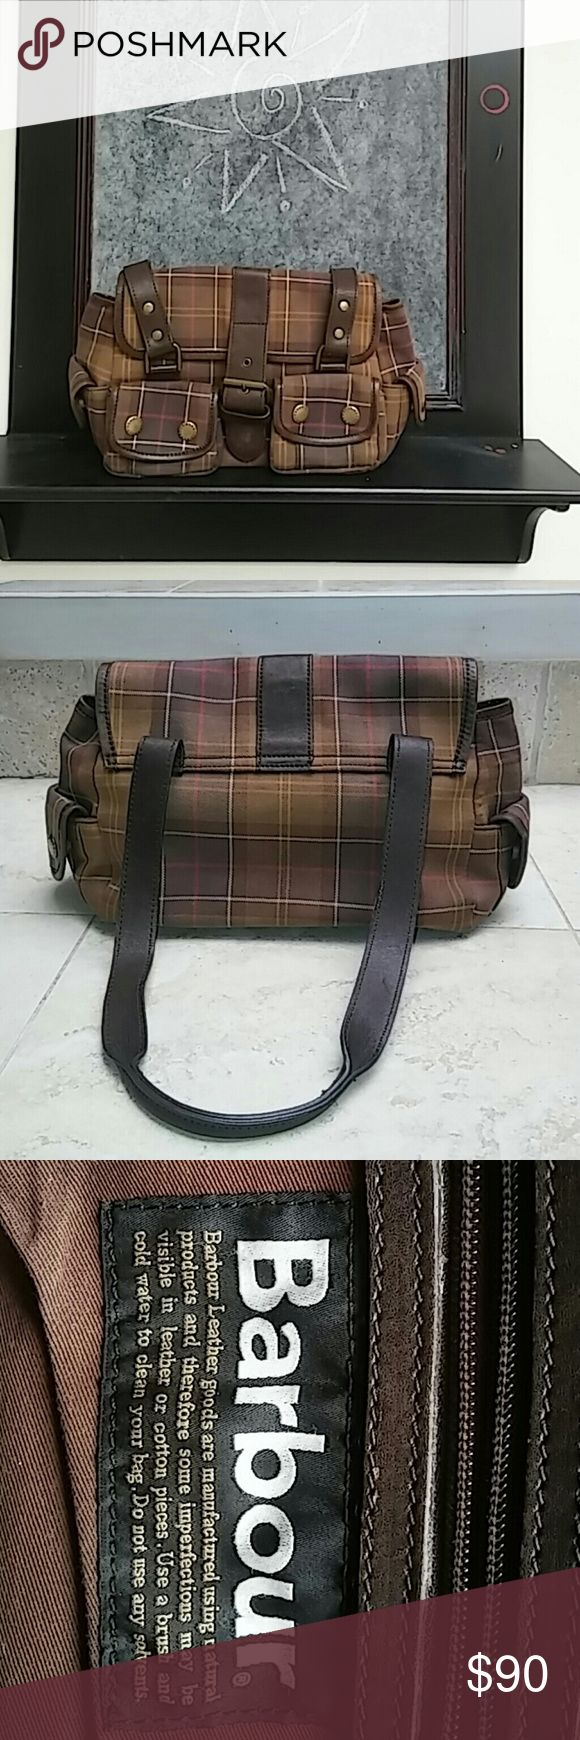 🔥Flash sale🔥 Small Barbour bag Brown/green/gold/red/cream earth tone colors. The fabric, leather and quality of this bag is top notch. I love the style and size of this bag. Perfect for travelling with your necessities. People right away will know you have a high end bag. It's that obvious. Hard to find in the U.S Barbour Bags Mini Bags